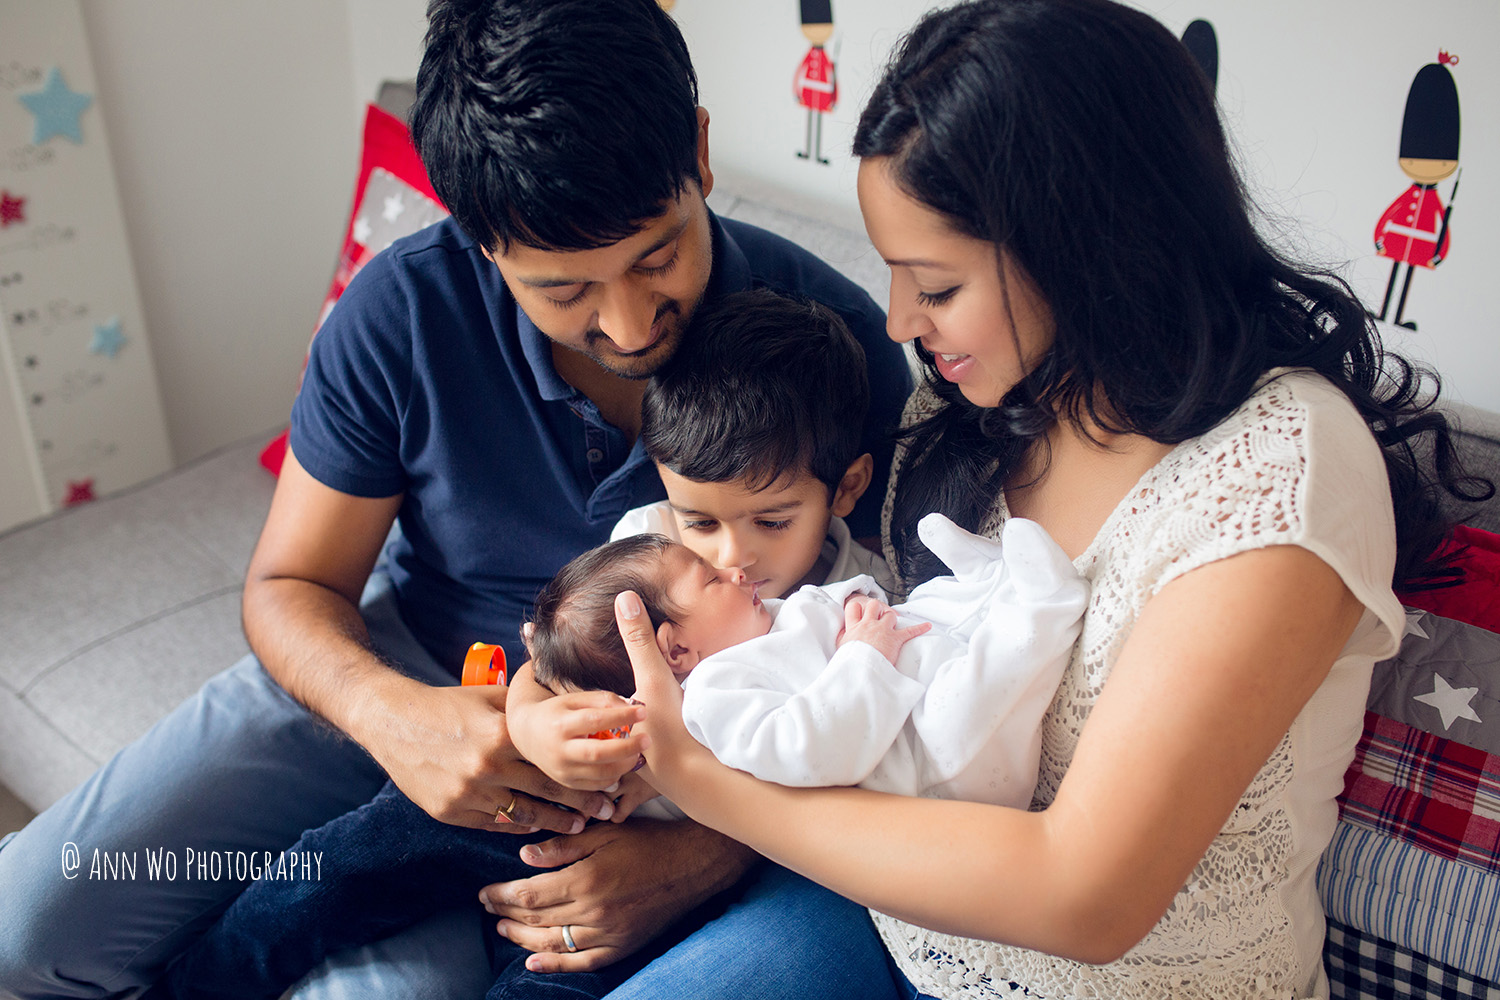 078-newborn-photography-at-home-ann-wo-london-44.JPG